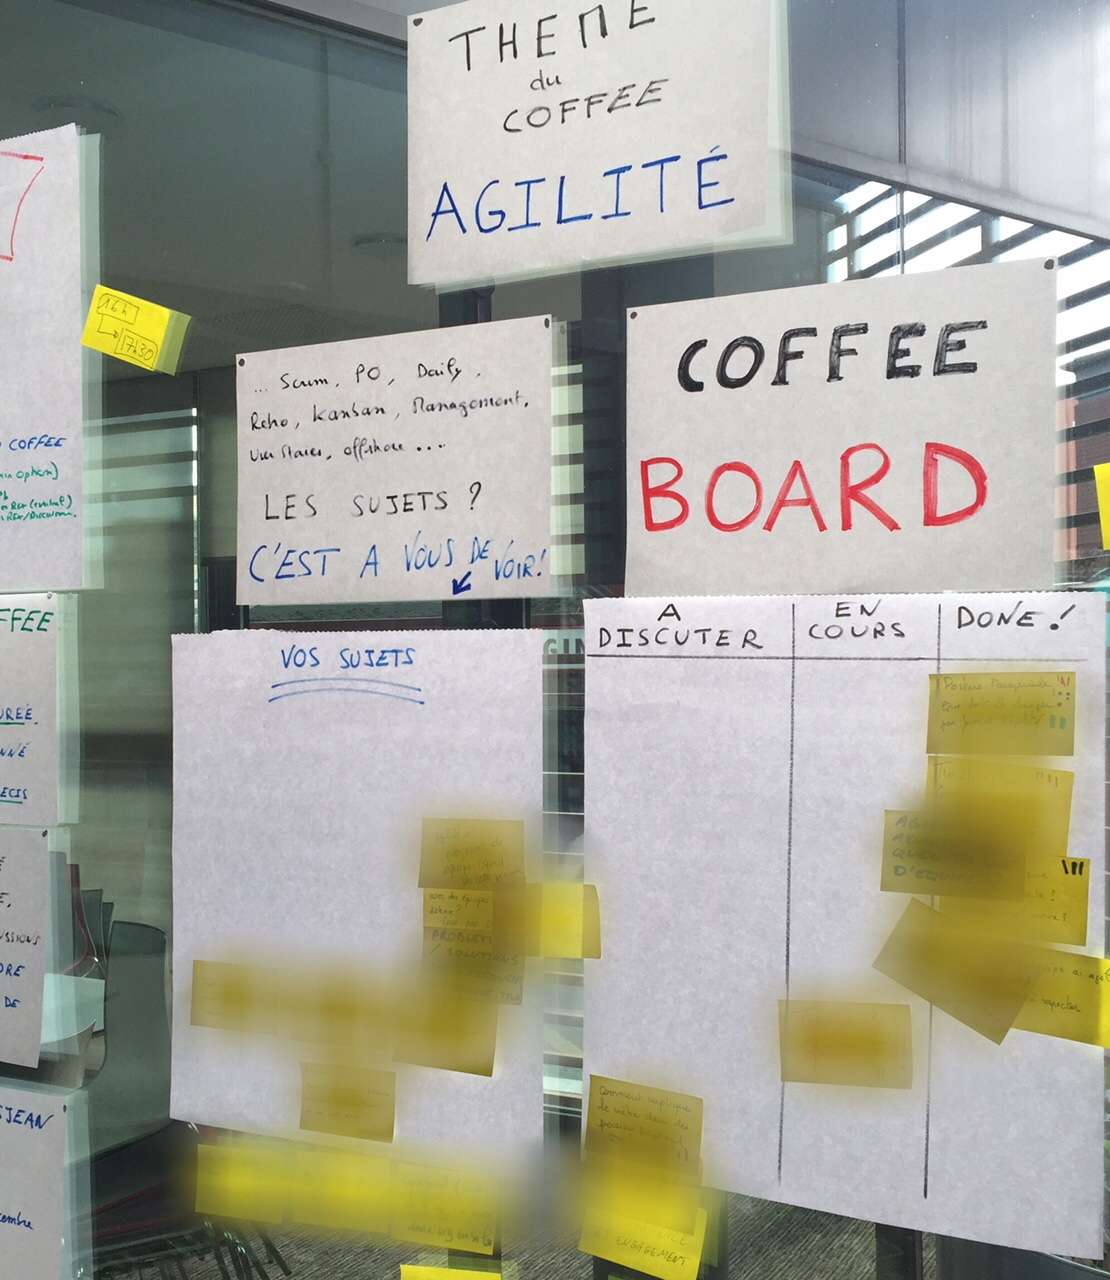 lean coffee agile